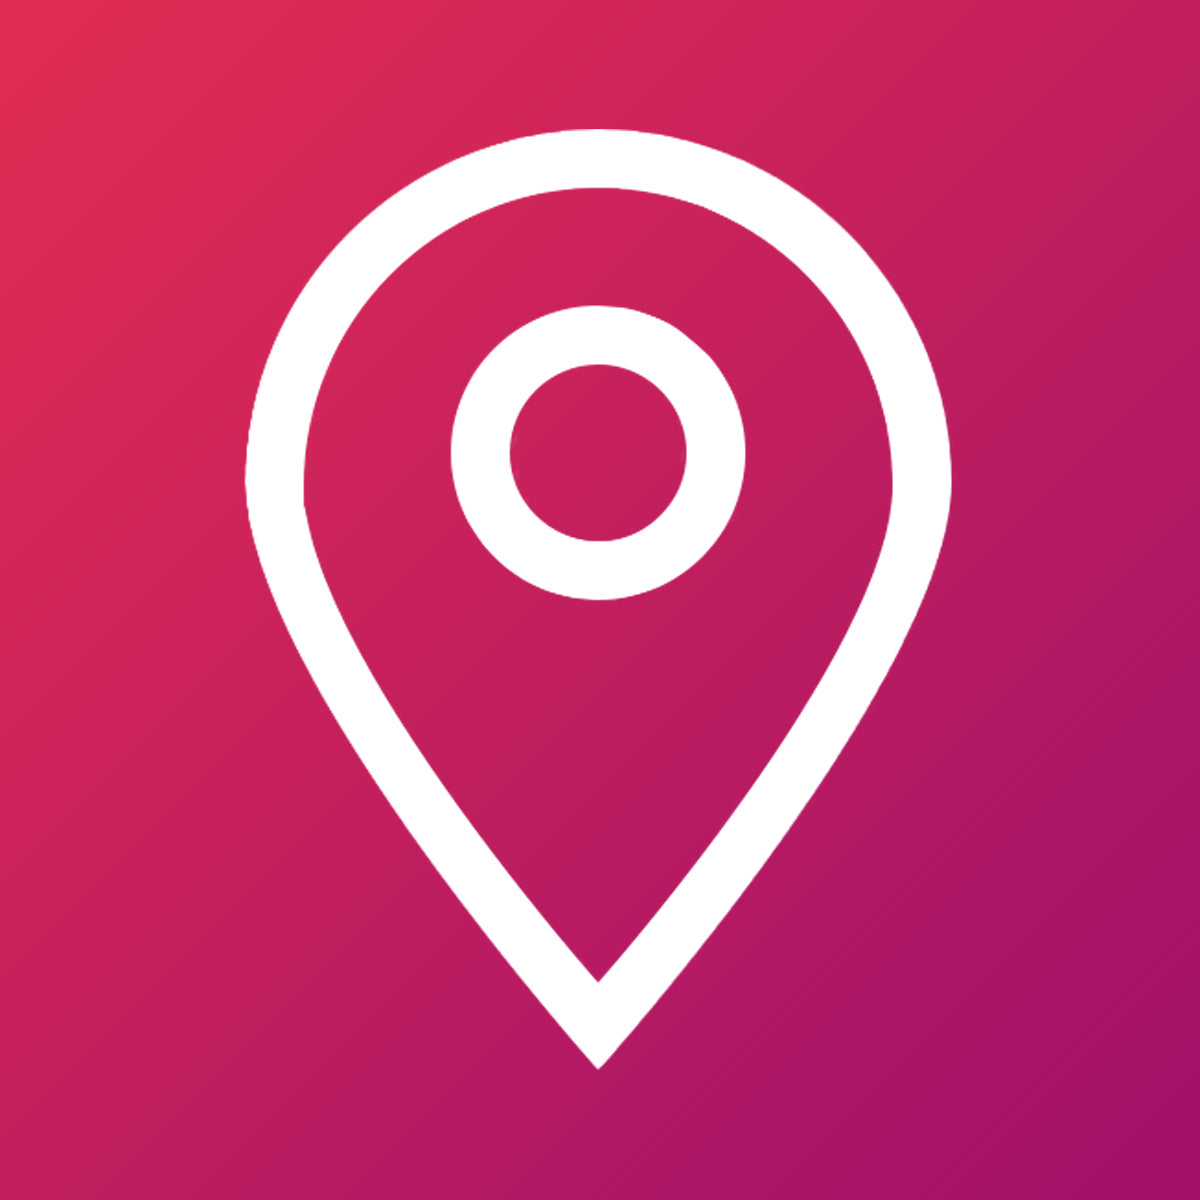 Hire Shopify Experts to integrate ZipCode Checker ‑ Zippy app into a Shopify store